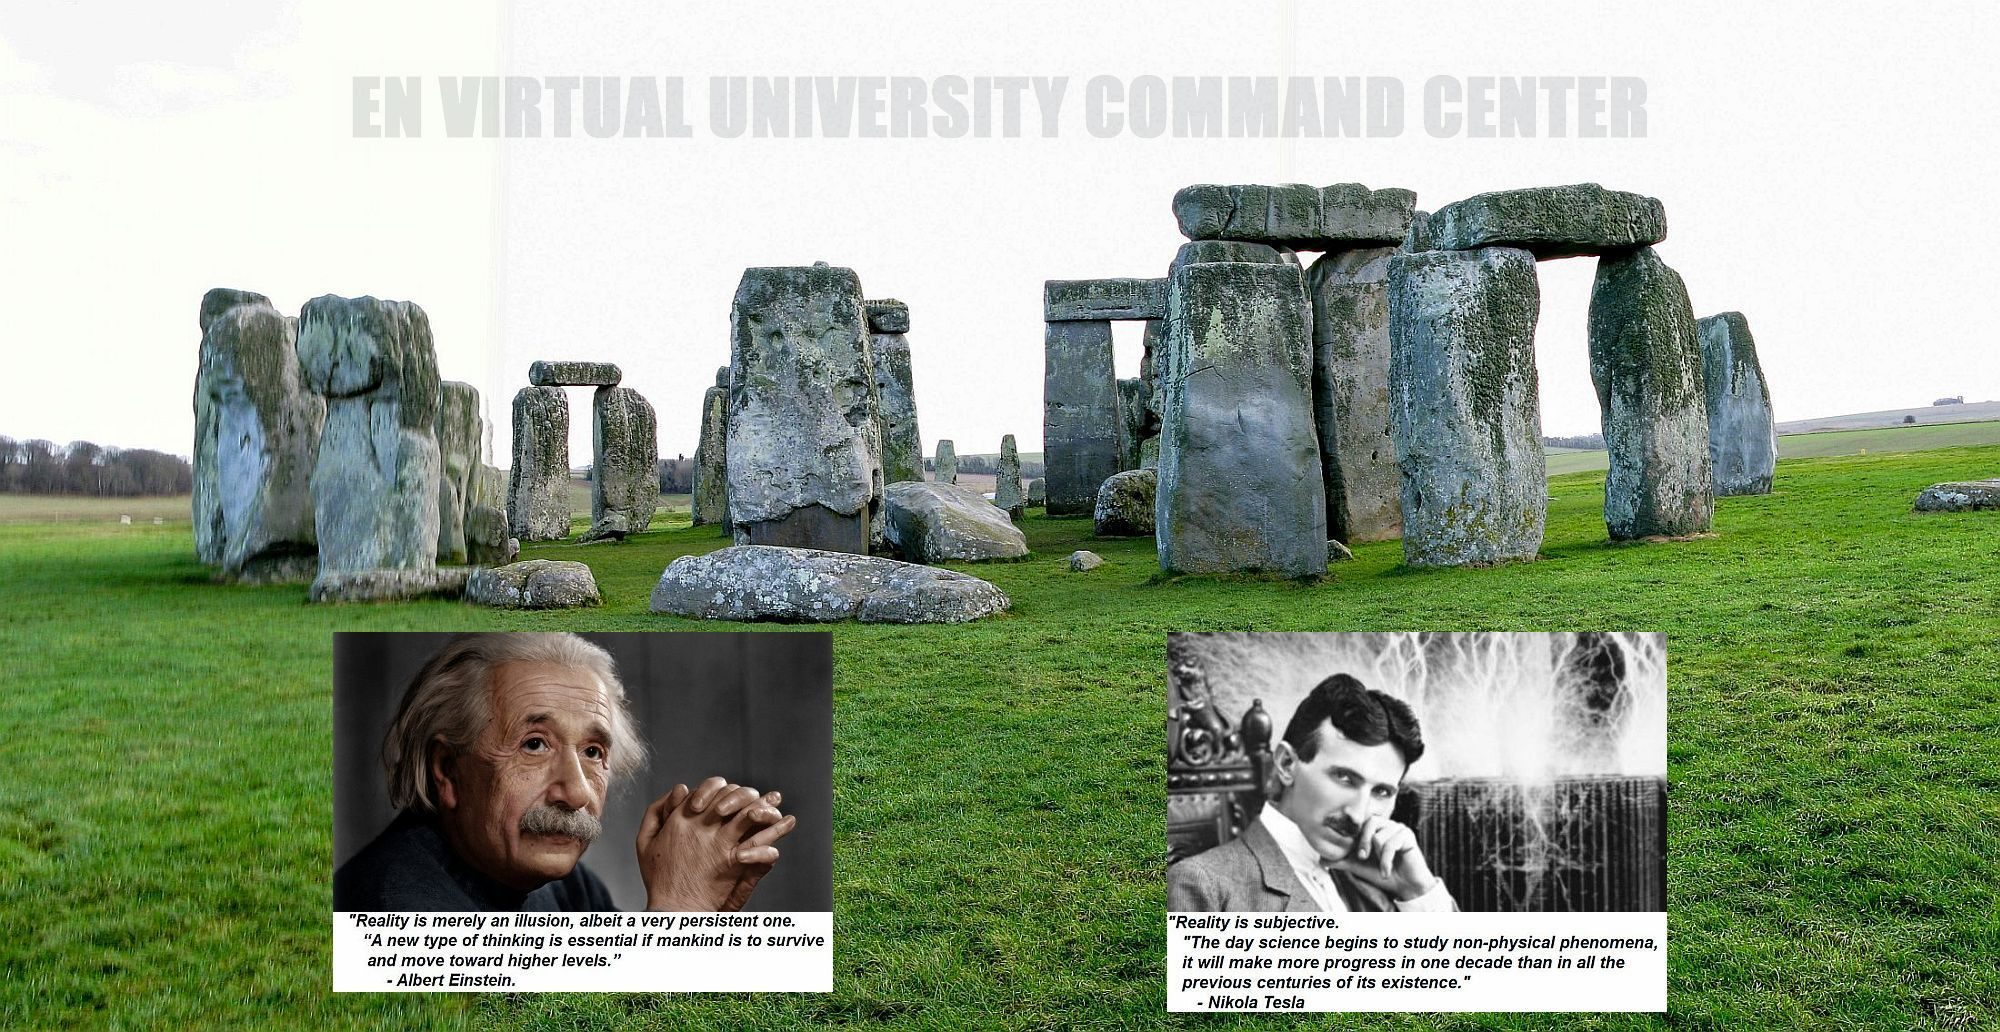 REAL-SCHOOL-Metaphysics-Conscious-Creation-Consciousness-Science-facts-University-2000